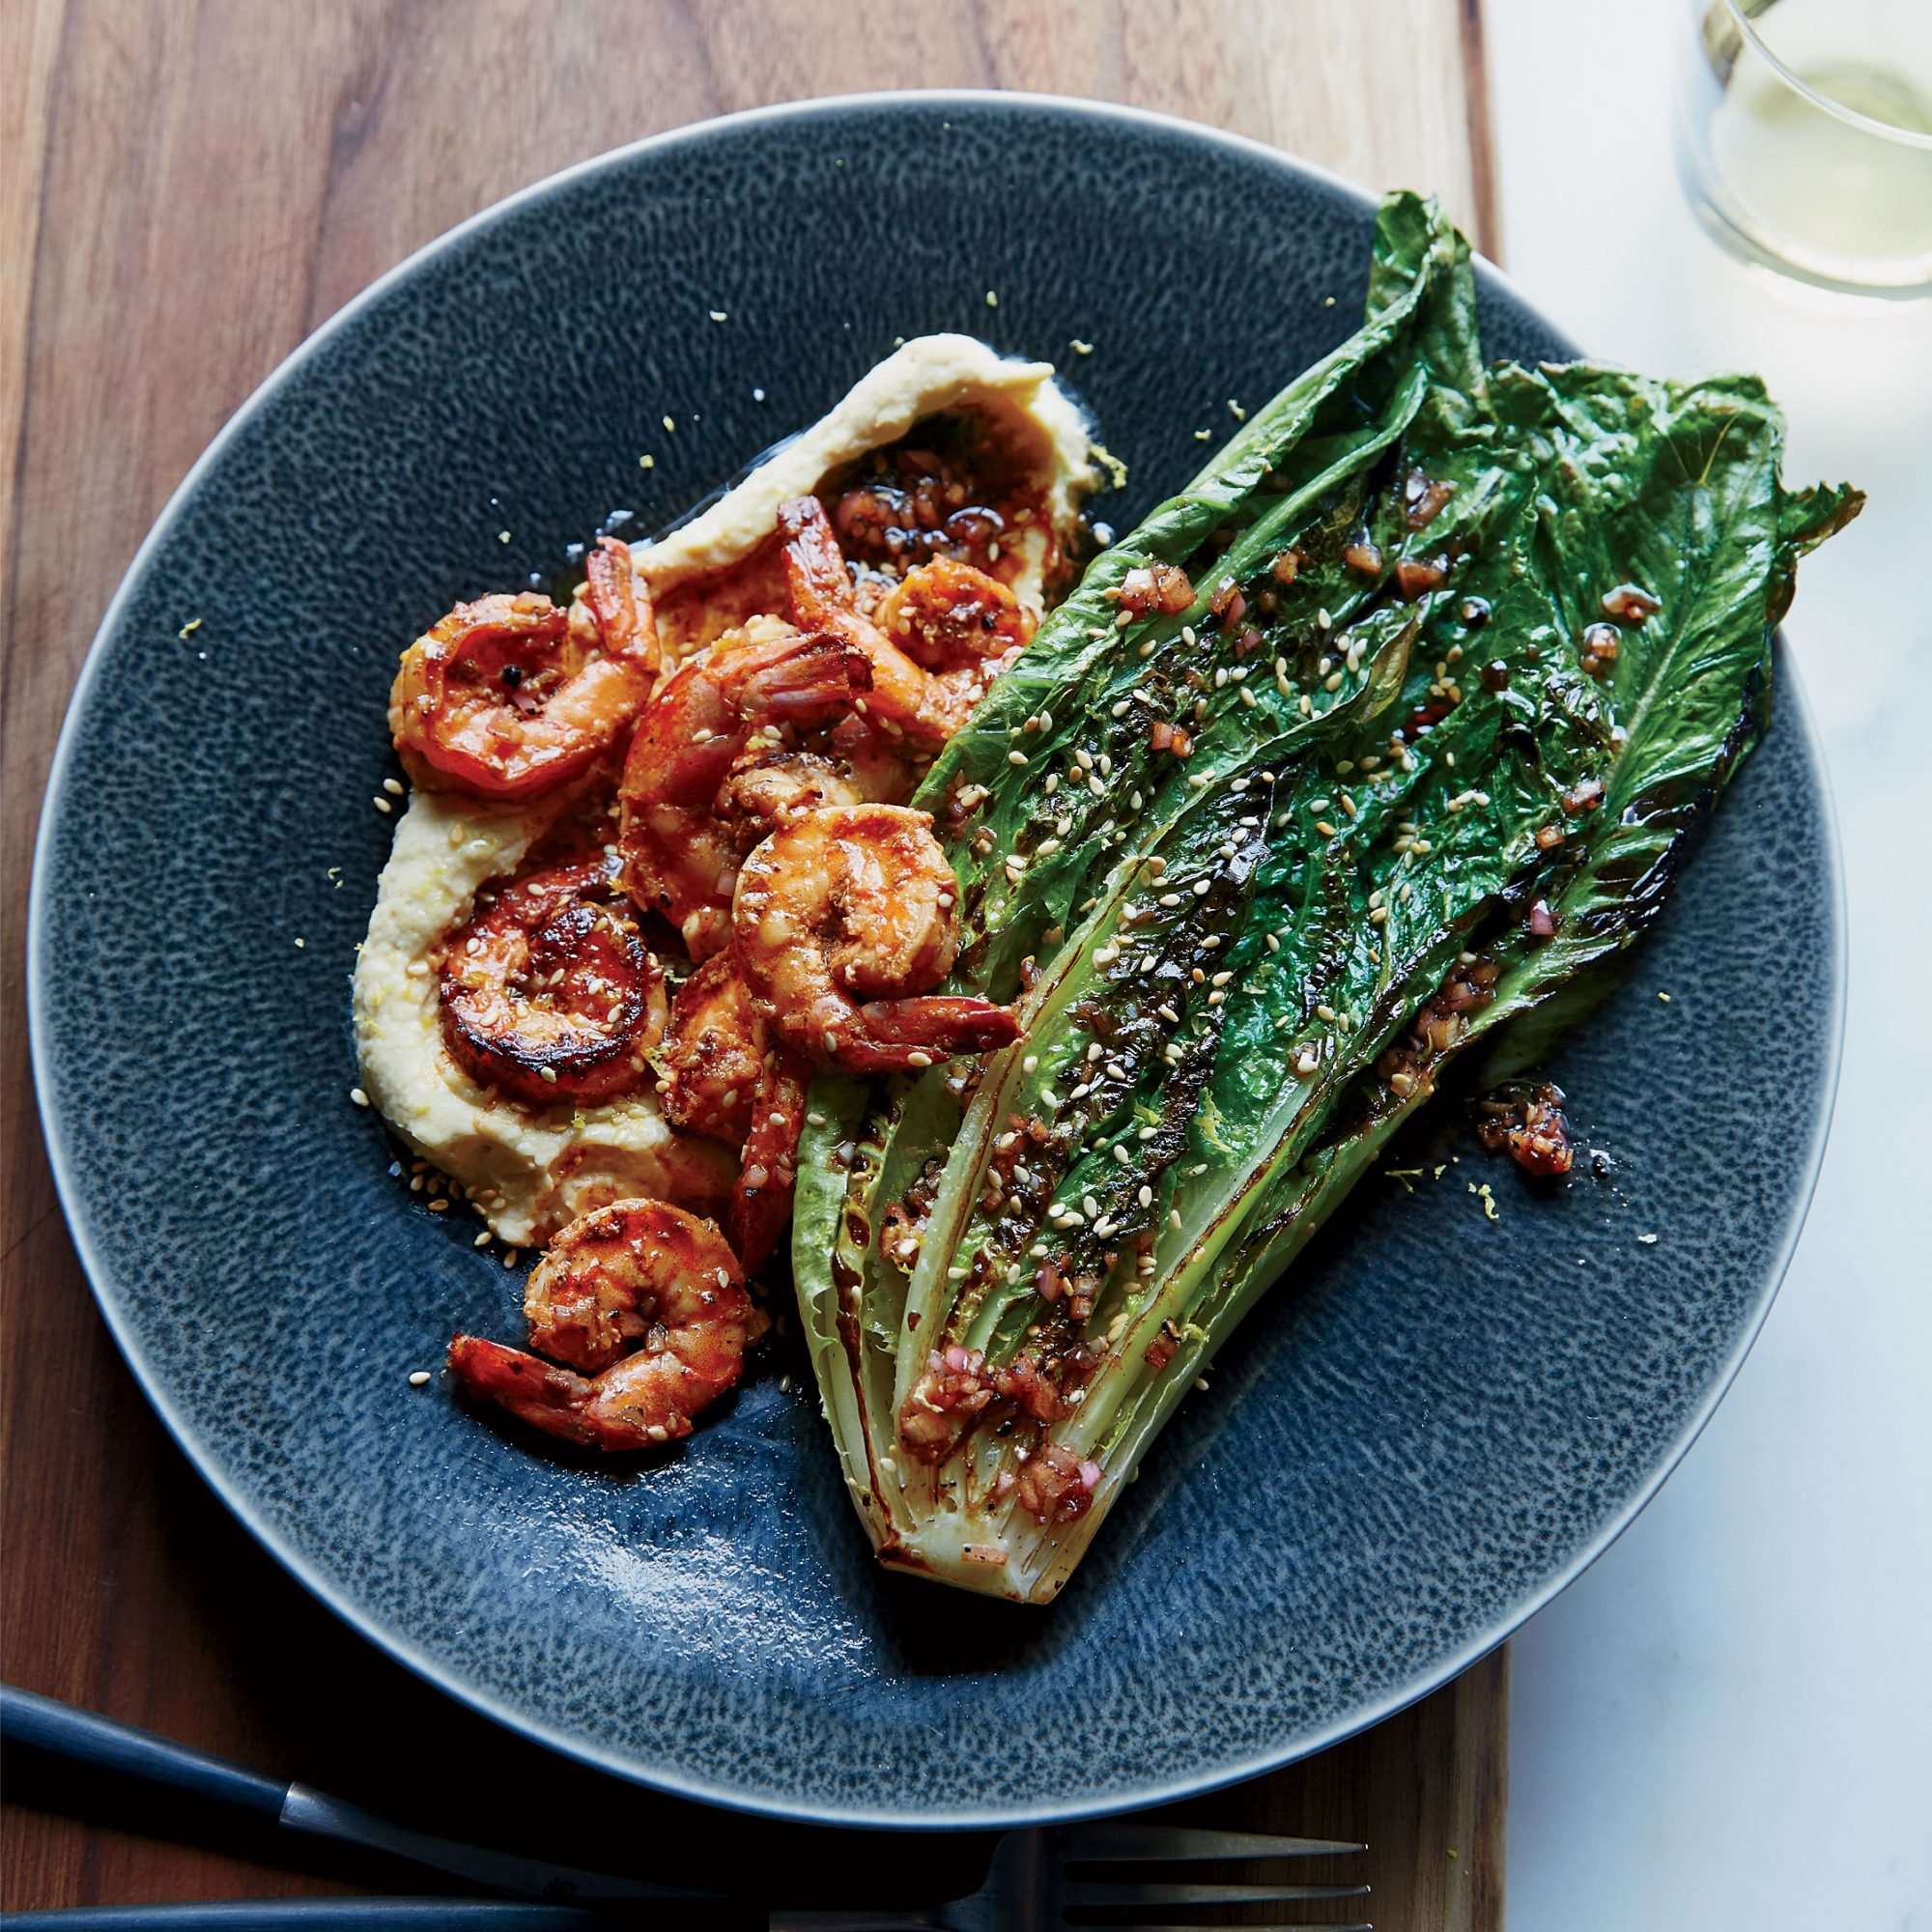 Spicy Shrimp with Pan Seared Romained and Chickpea Puree